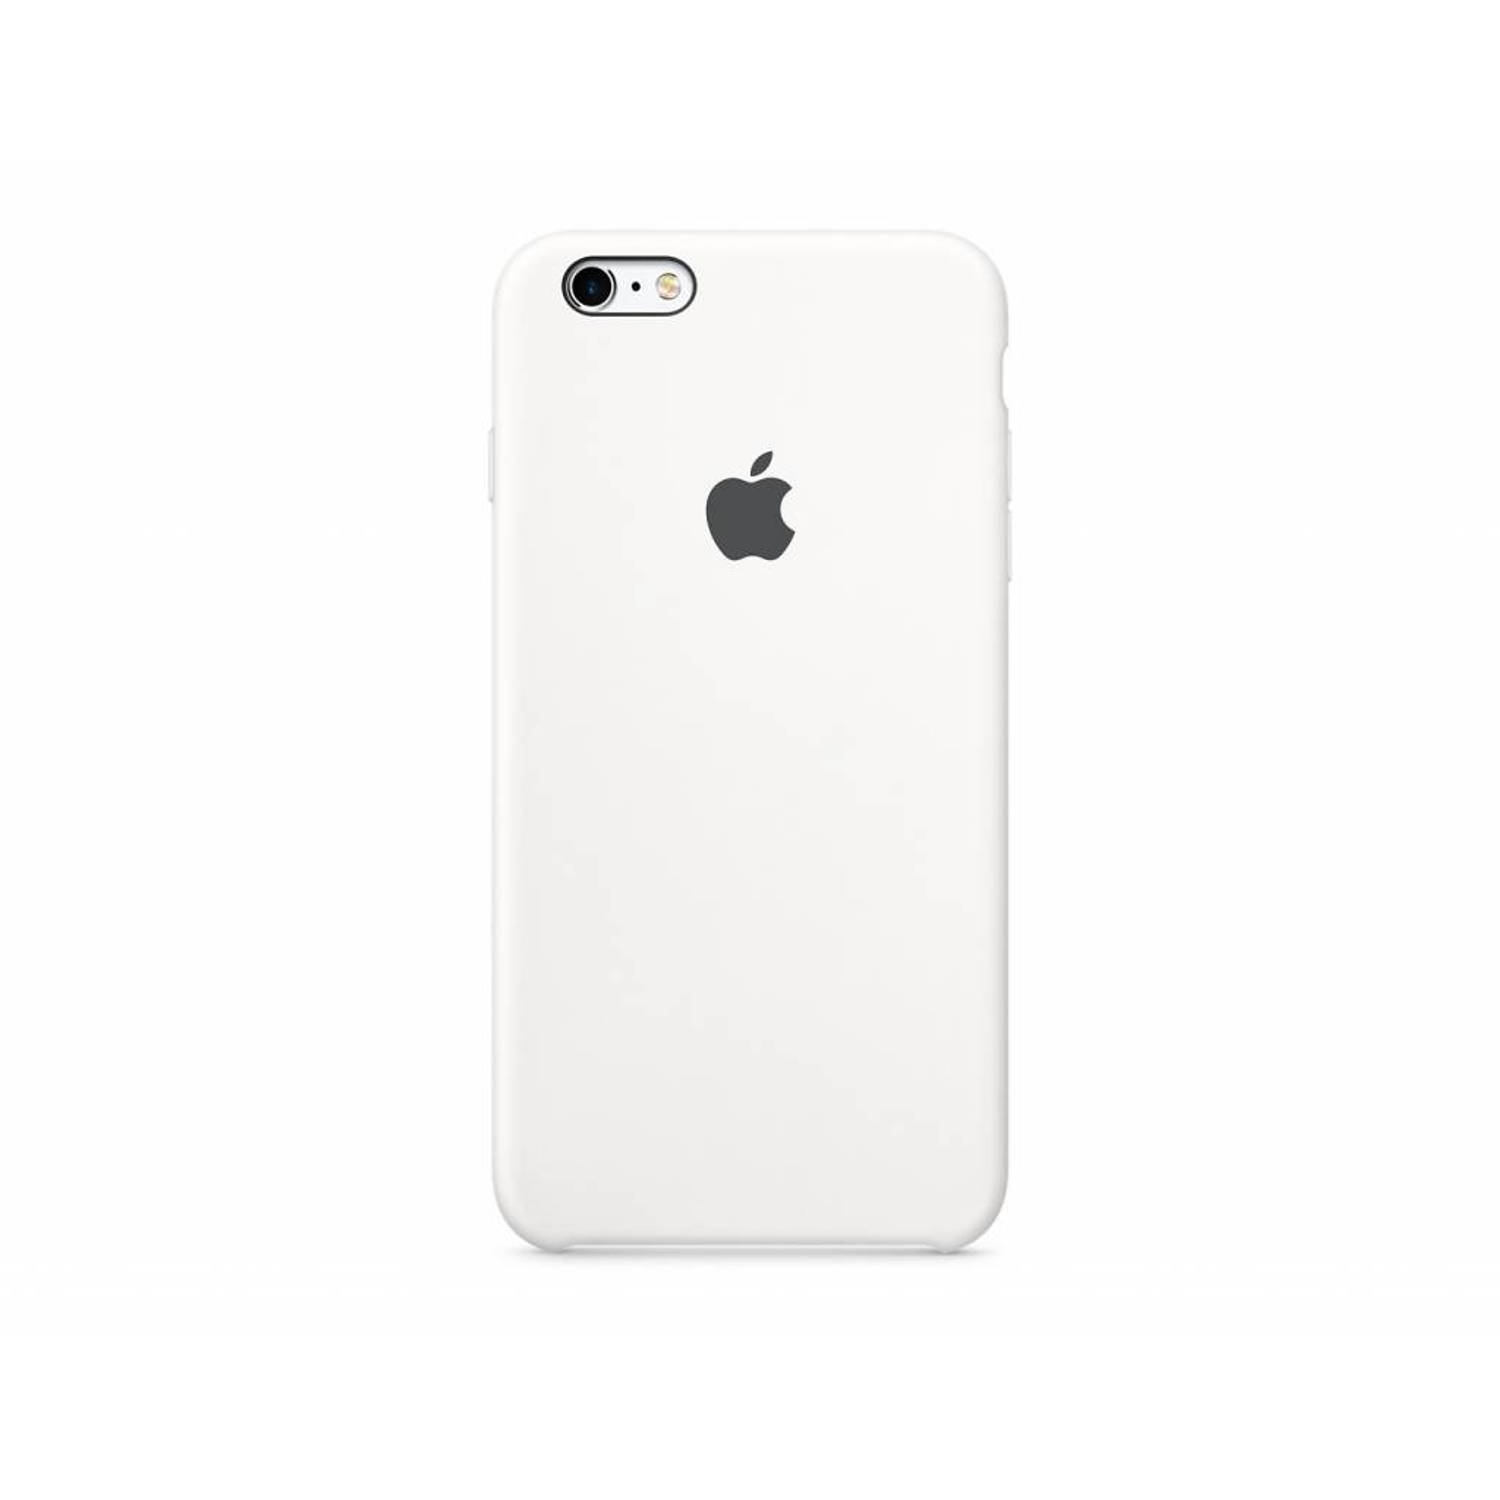 Apple iPhone 6s Silicone Case White (MKY12ZM-A)